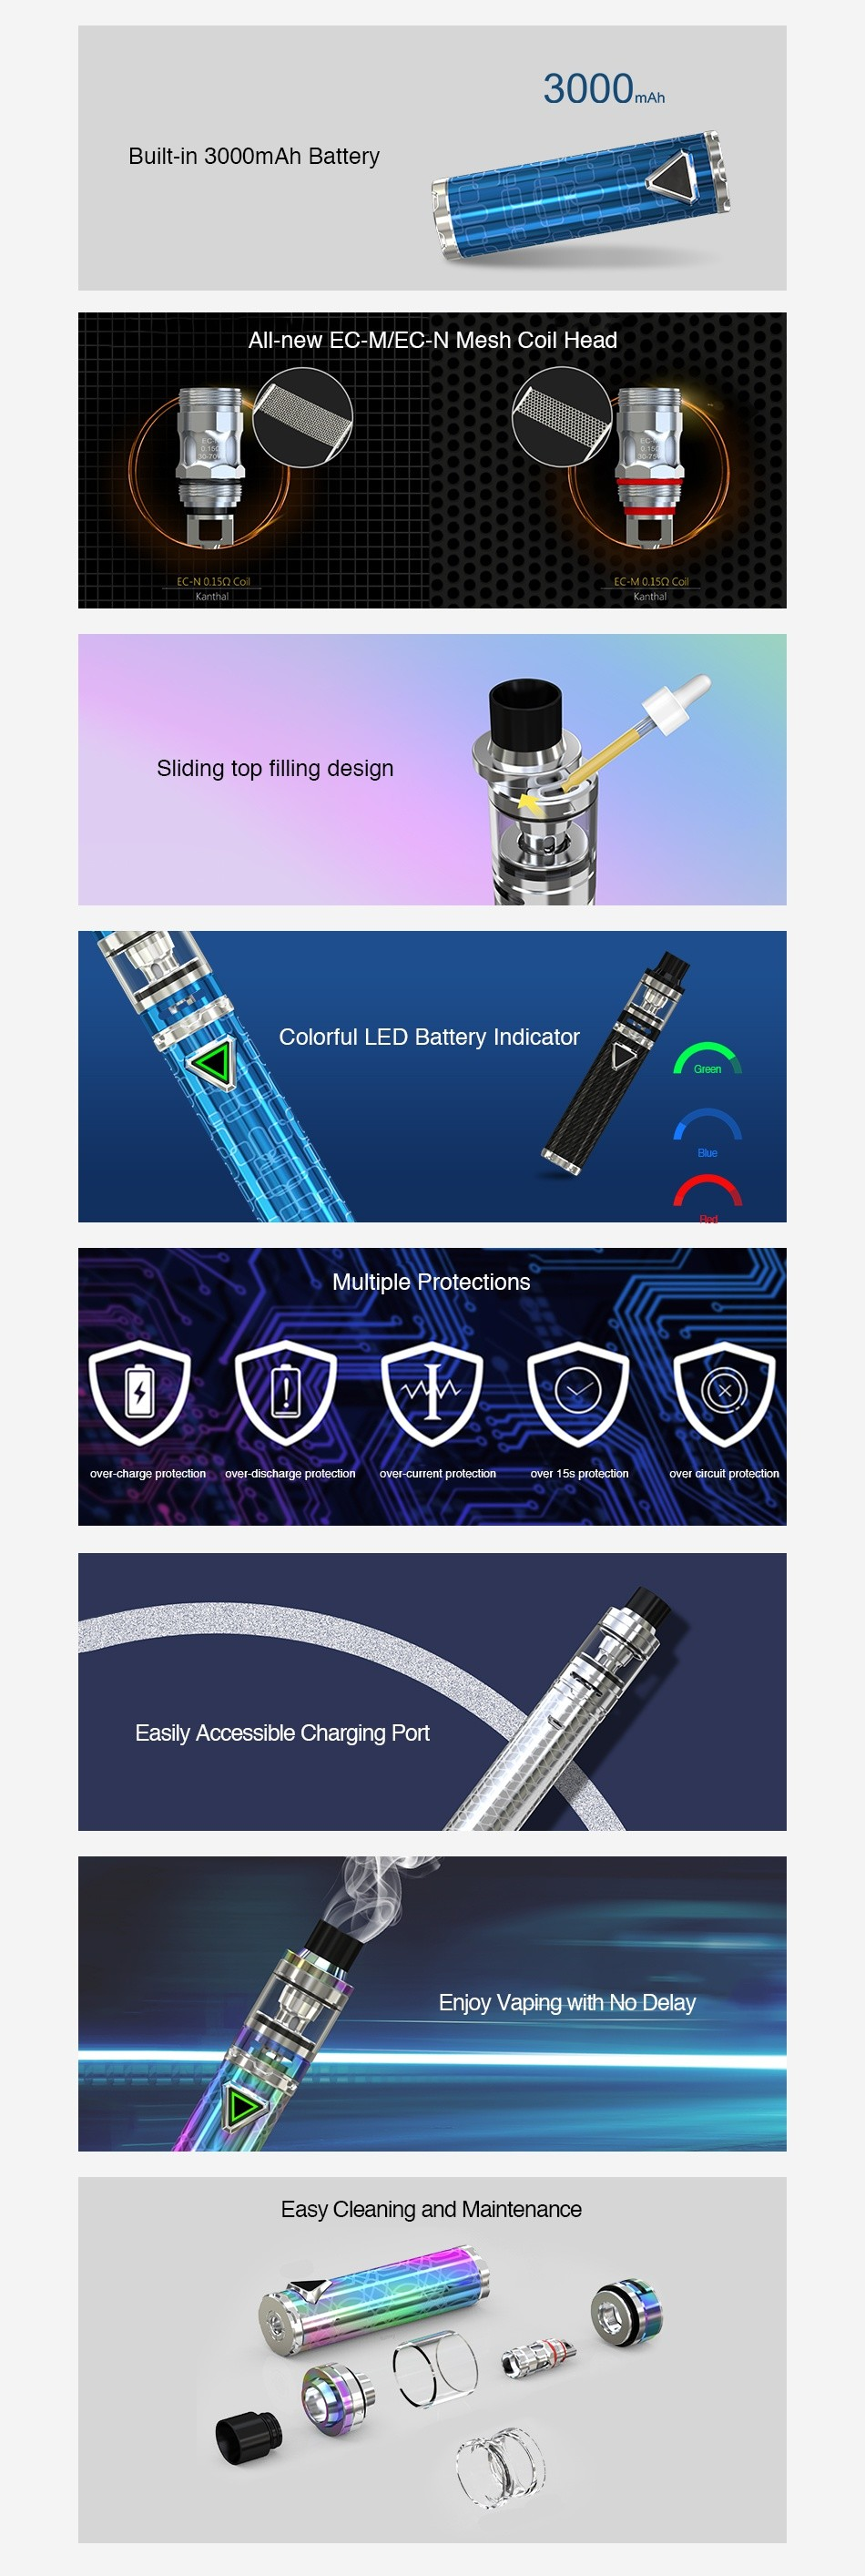 Eleaf iJust ECM Starter Kit 3000mAh 3000m Built in 3000mAh Battery All new EC M EC N Mesh Coil Head Sliding top filling design Colorful LED Battery Indicator Multiple Protections er charge Frctec scharge protector nt protecton Easily Accessible Charging Port Enjoy vaping with No Delay Easy Cleaning and Maintenance